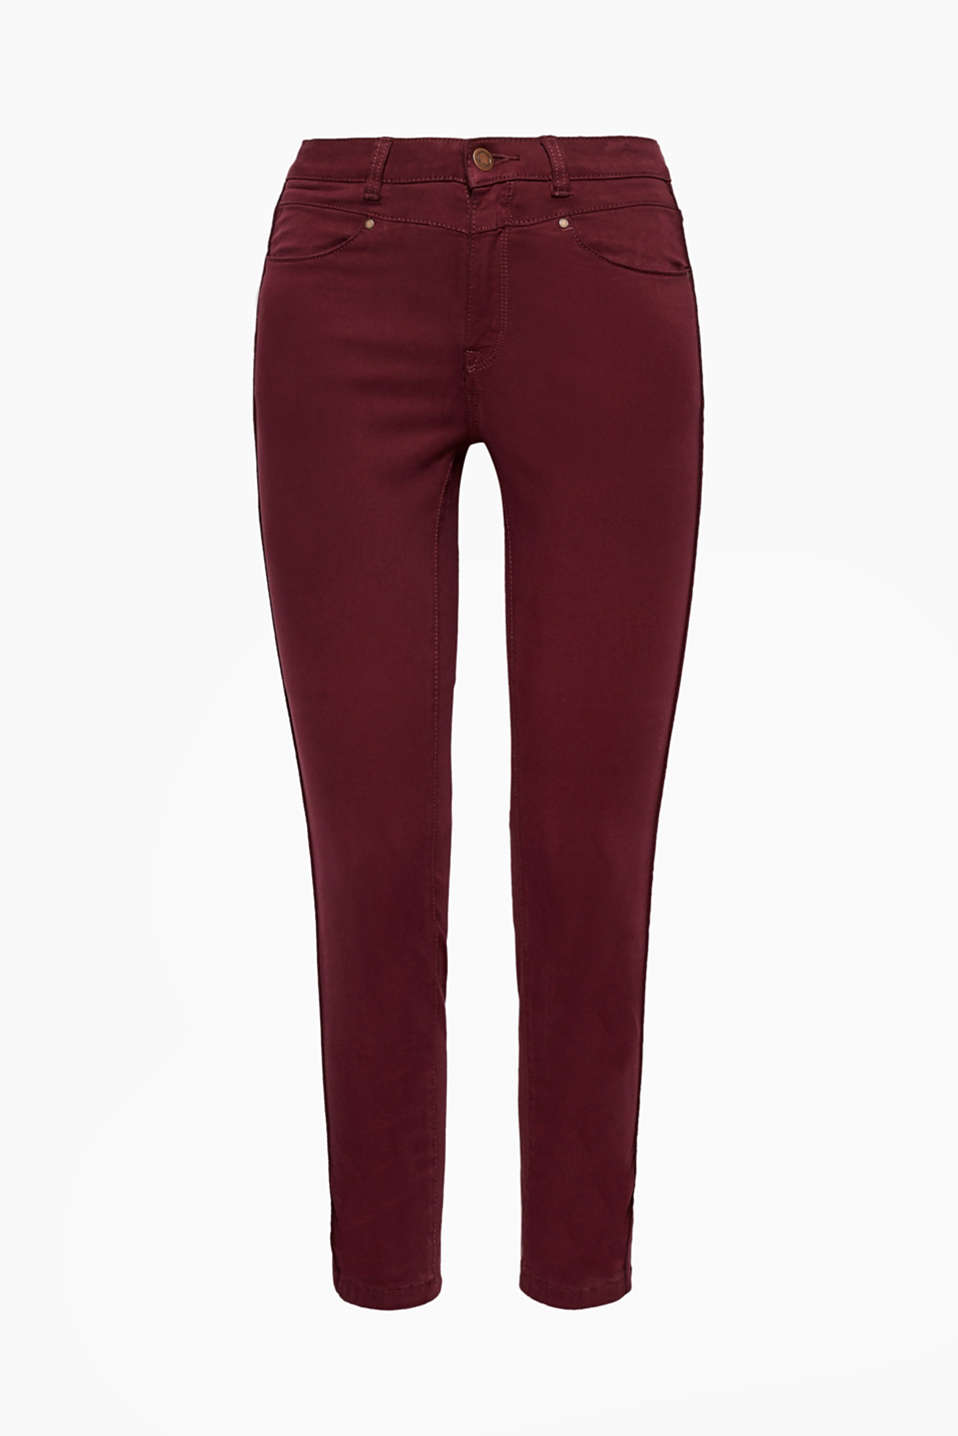 These cropped trousers in stretchy blended cotton have a peachy soft texture and velvet accents.